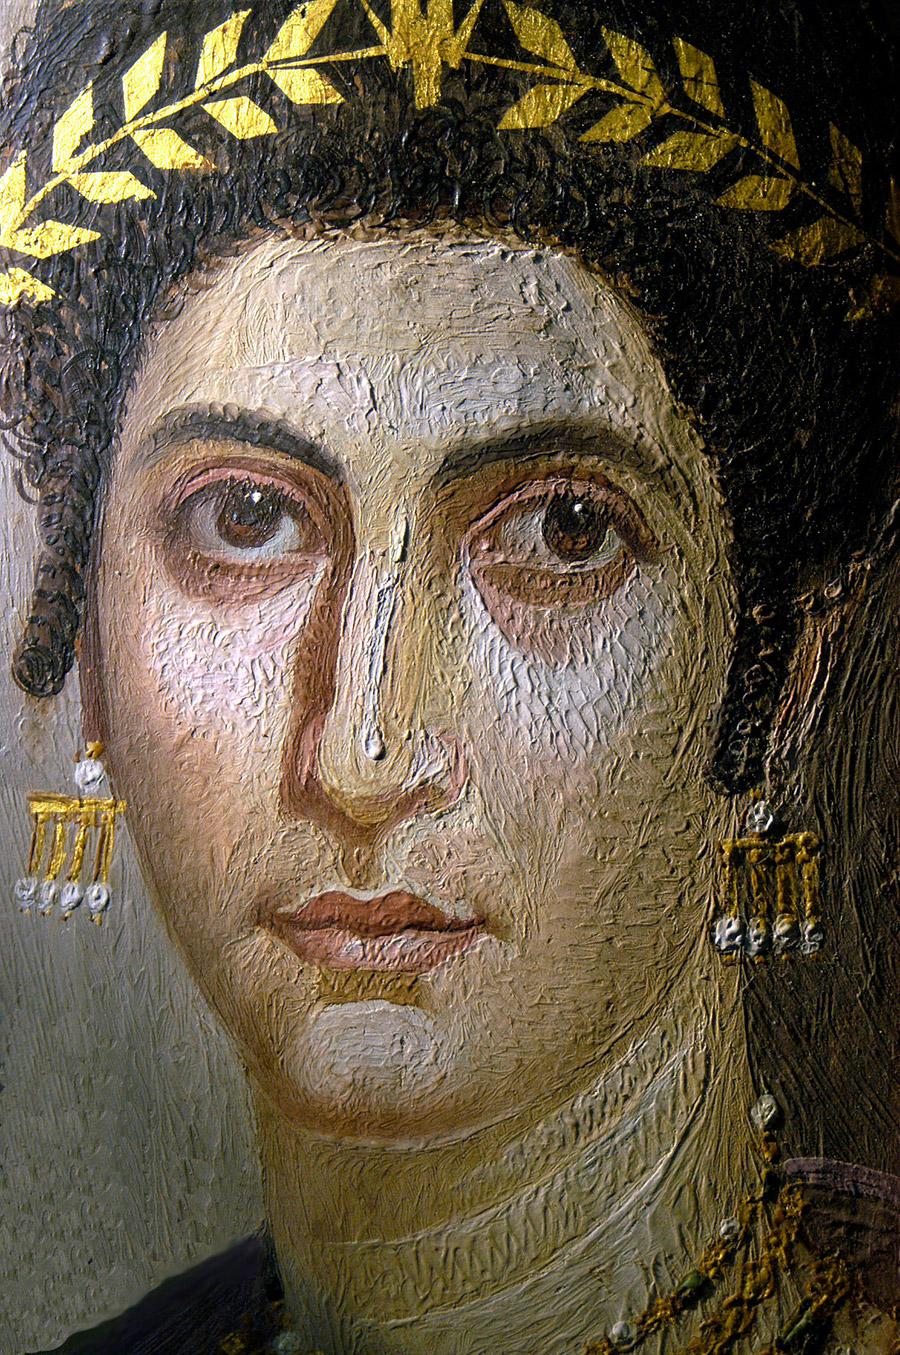 Detail of a Mummy Portrait of Isidora shown in raking light